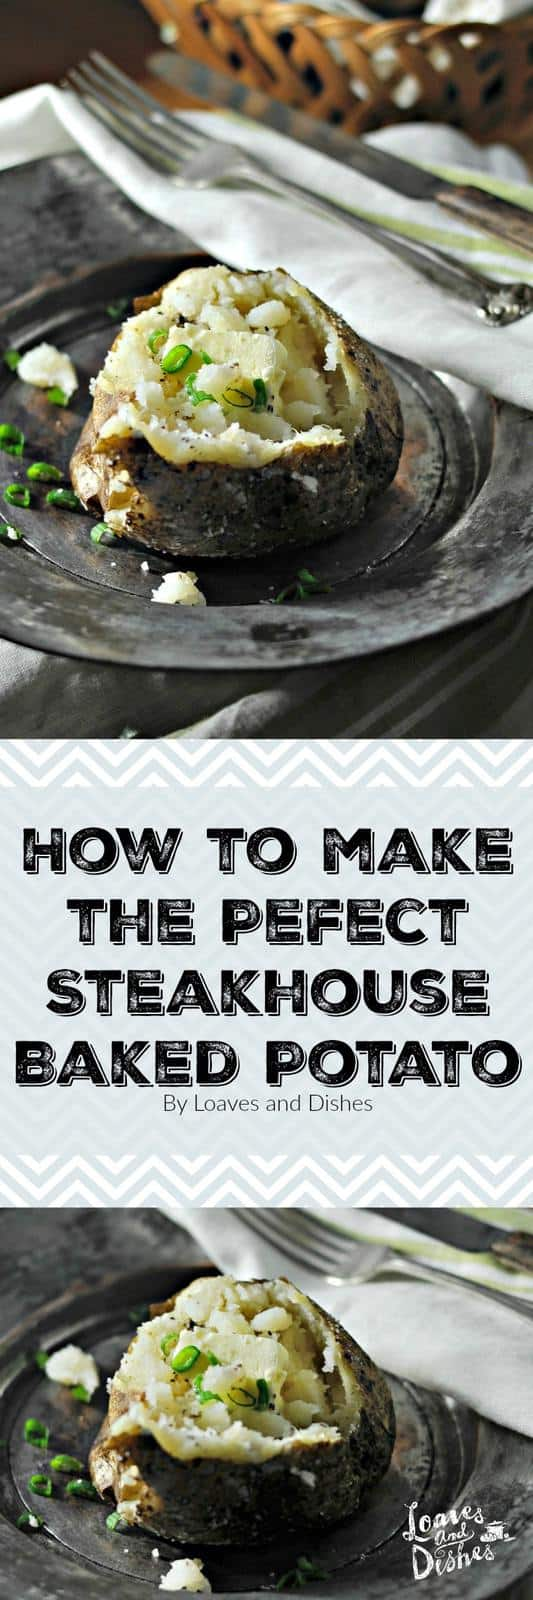 Perfect steakhouse baked potato loaves and dishes did you ever wonder how the restaurant or steakhouse makes that perfect baked potato crispy ccuart Choice Image